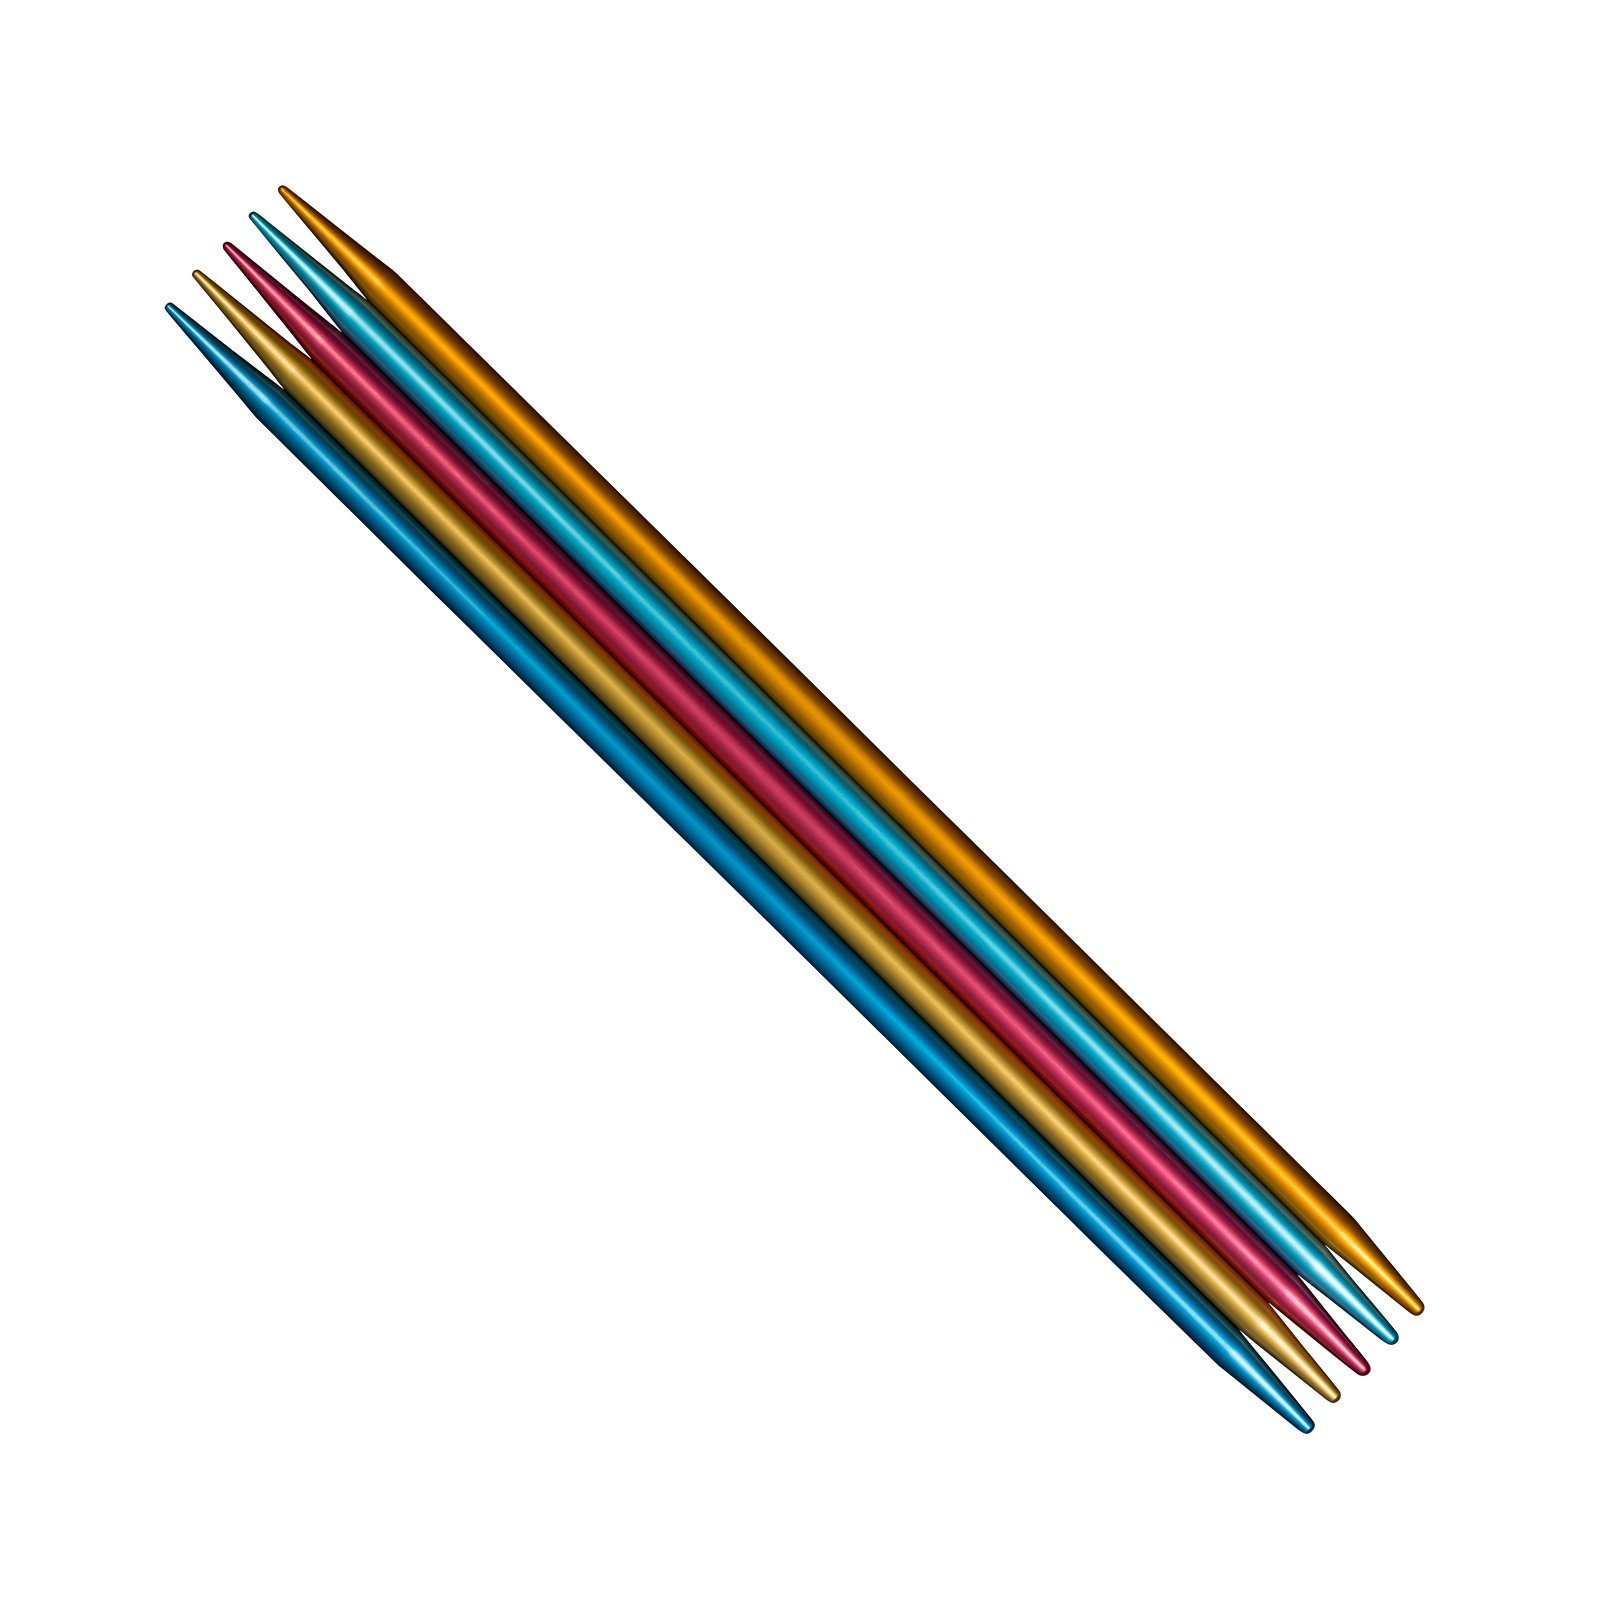 addi Colibri (FlipStix) Double-pointed Needles Full Set of All 15 Sizes (US0 - US11), all in all 75 Needles (6 Inch)